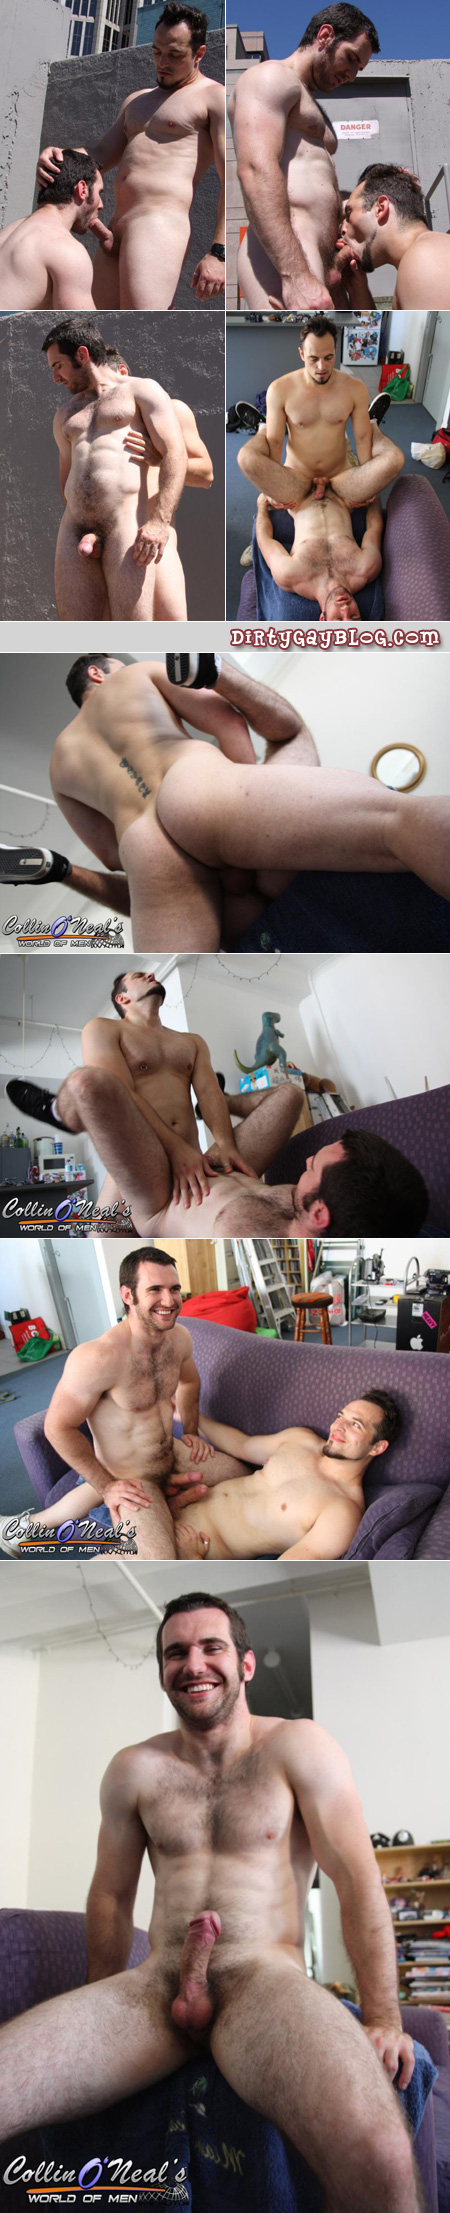 Hairy muscle cub Josh loves bottoming for this beefy top man.